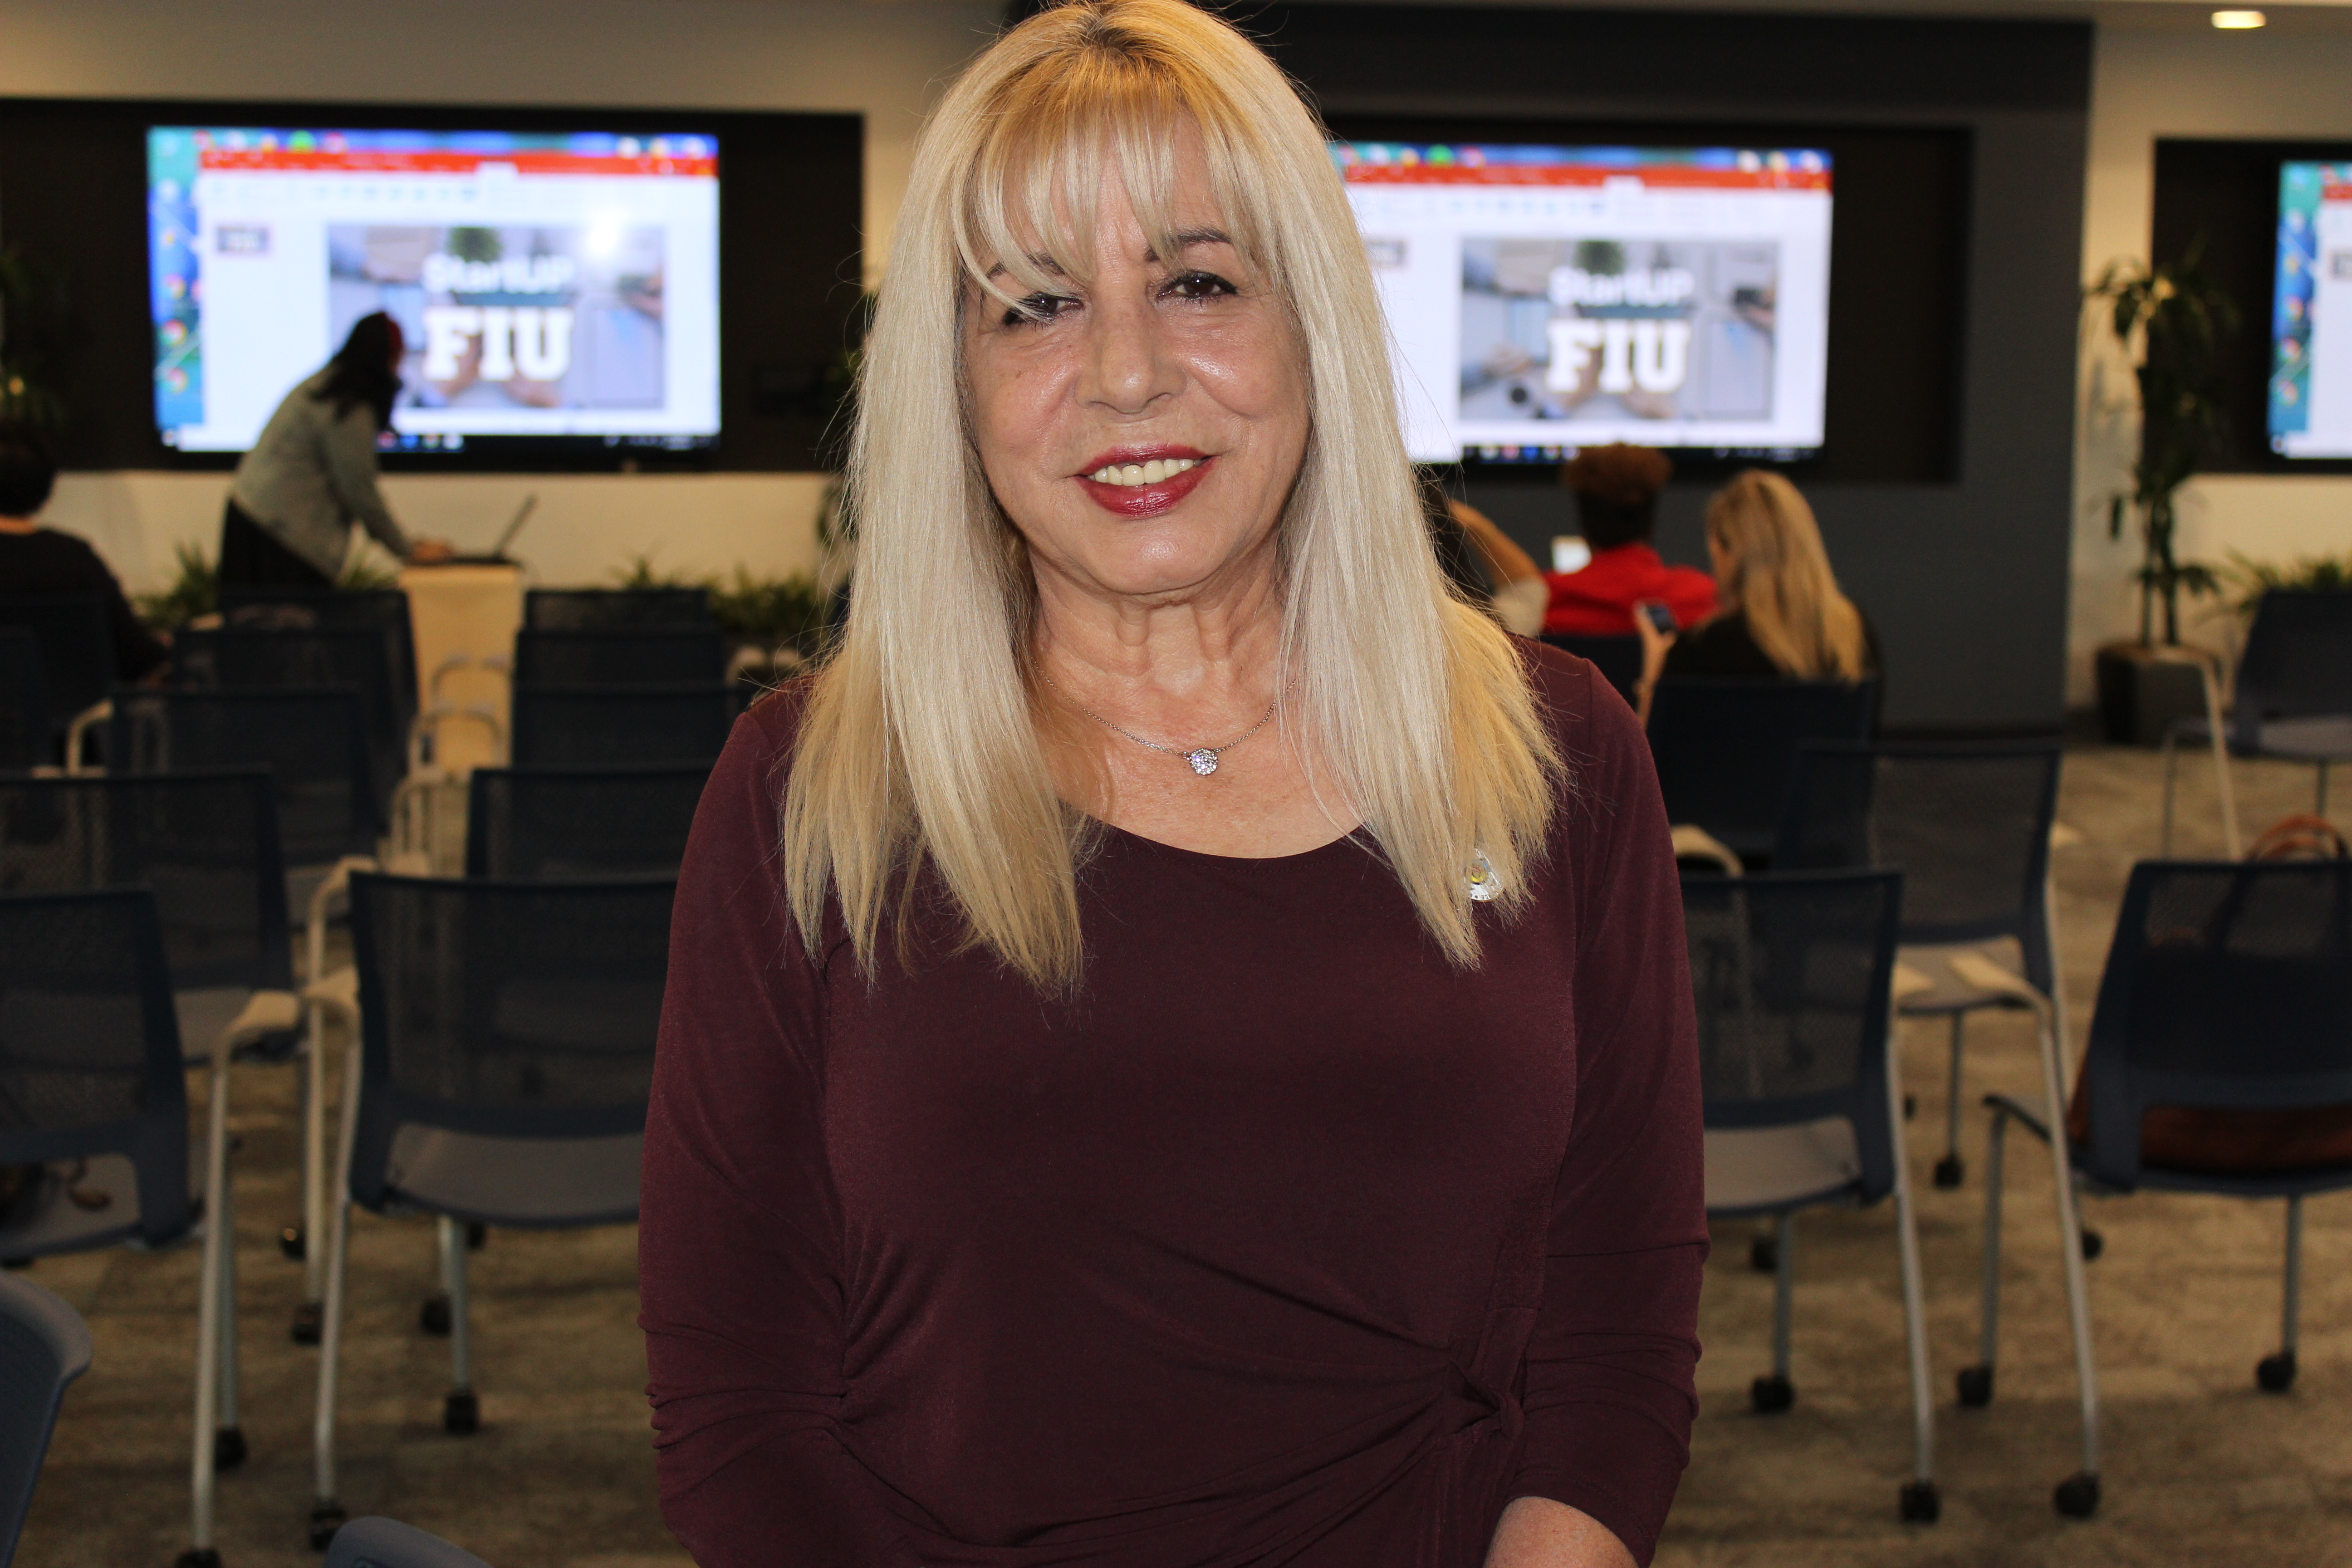 Doral Chamber of Commerce introduces DCC 21st Century Technology, Carmen Lopez taking a solo picture.